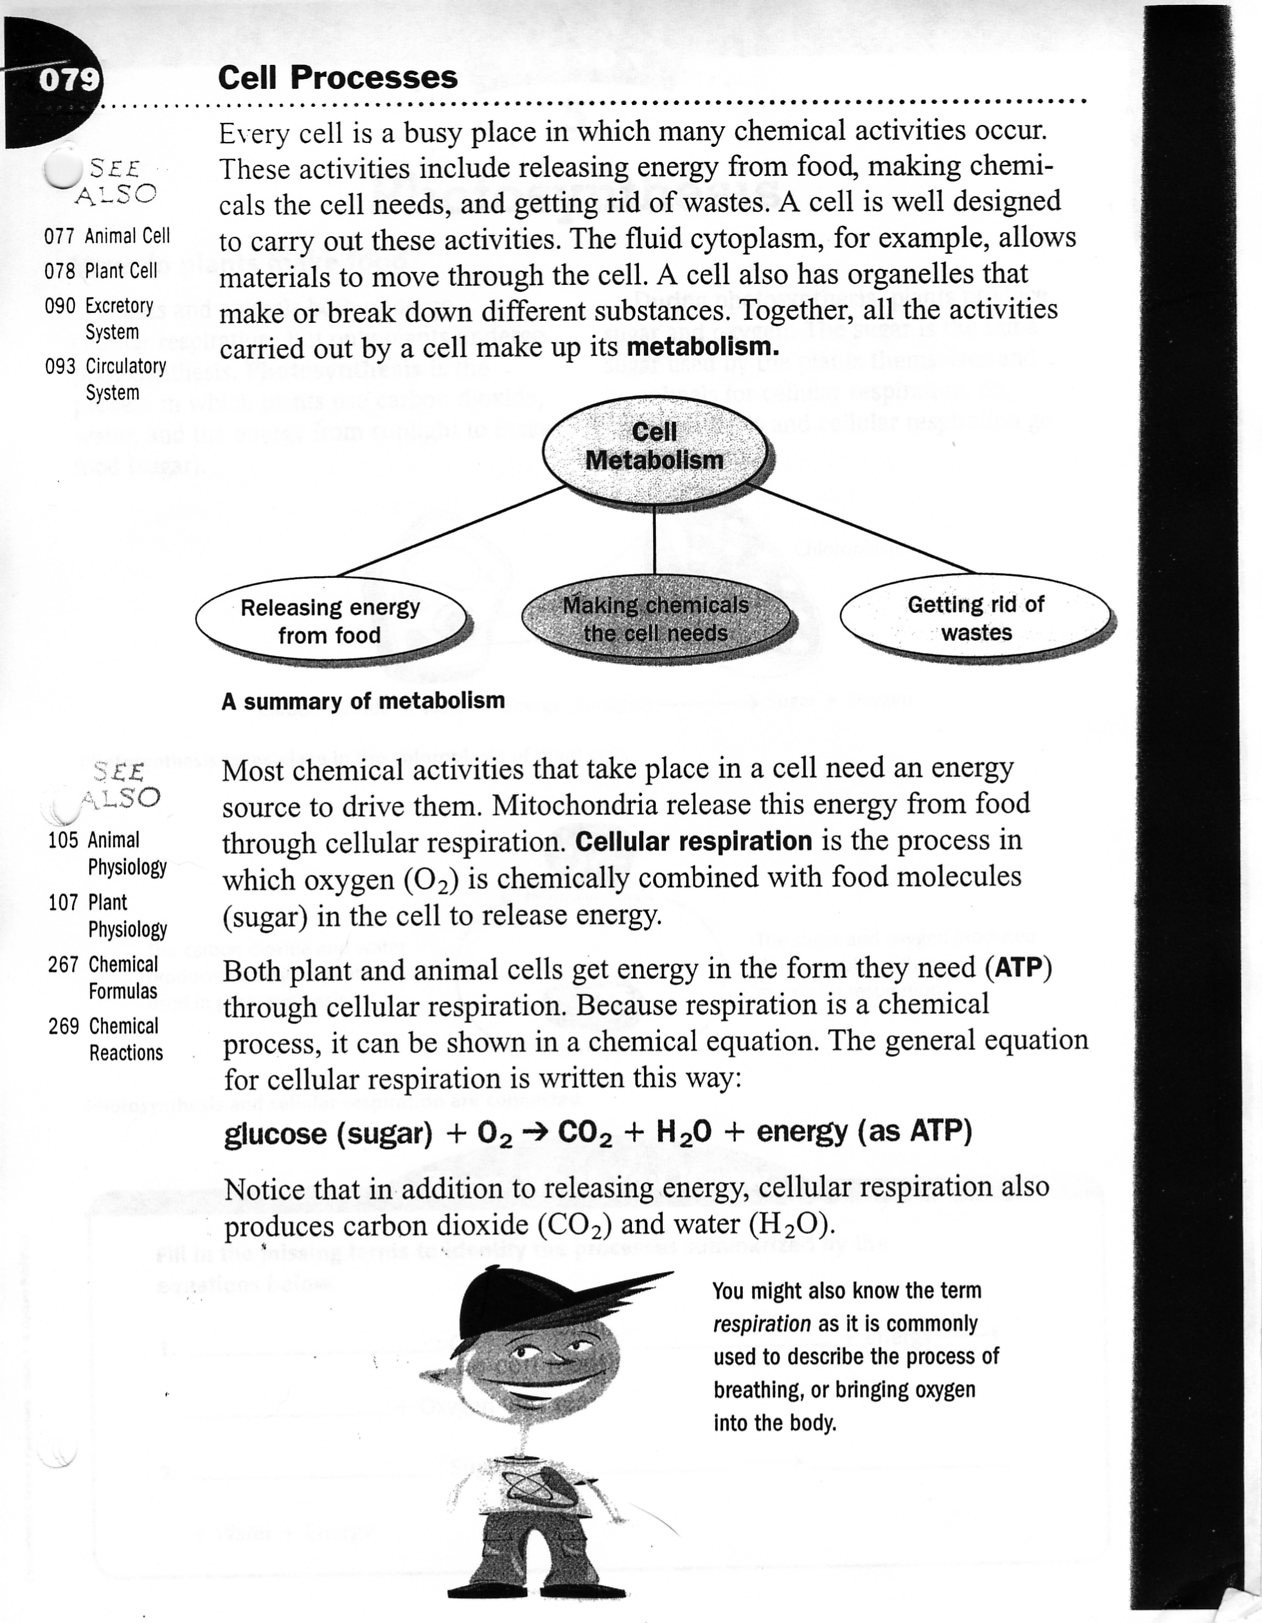 7th Grade Life Science Worksheets Life Science Easy Worksheets Middle School Cellprocessesws